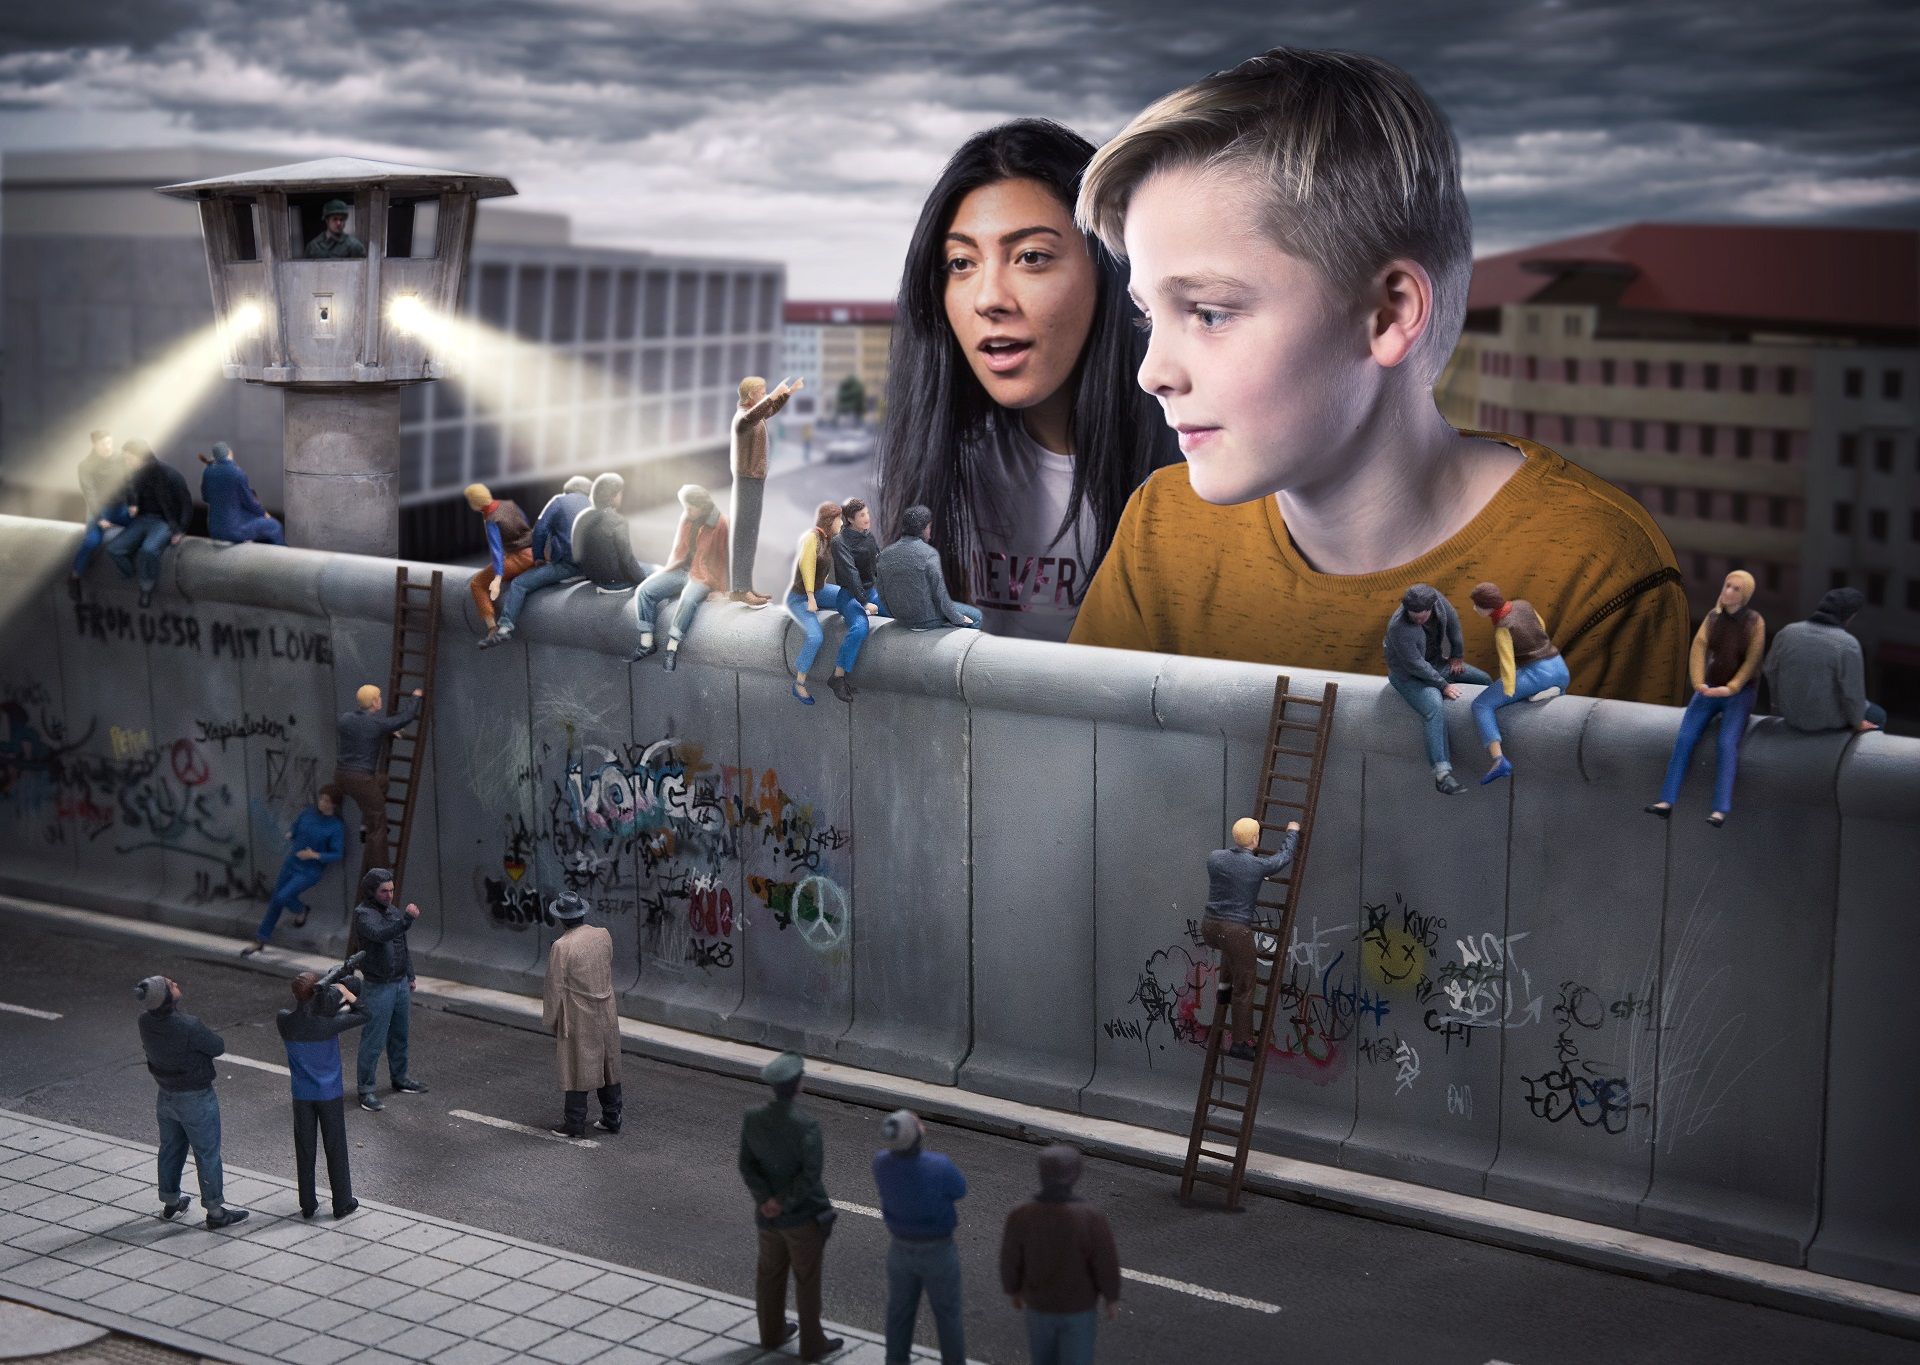 a boy and a girl watch the reconstruction of the Berlin wall with graffiti at Little BIG City Berlin